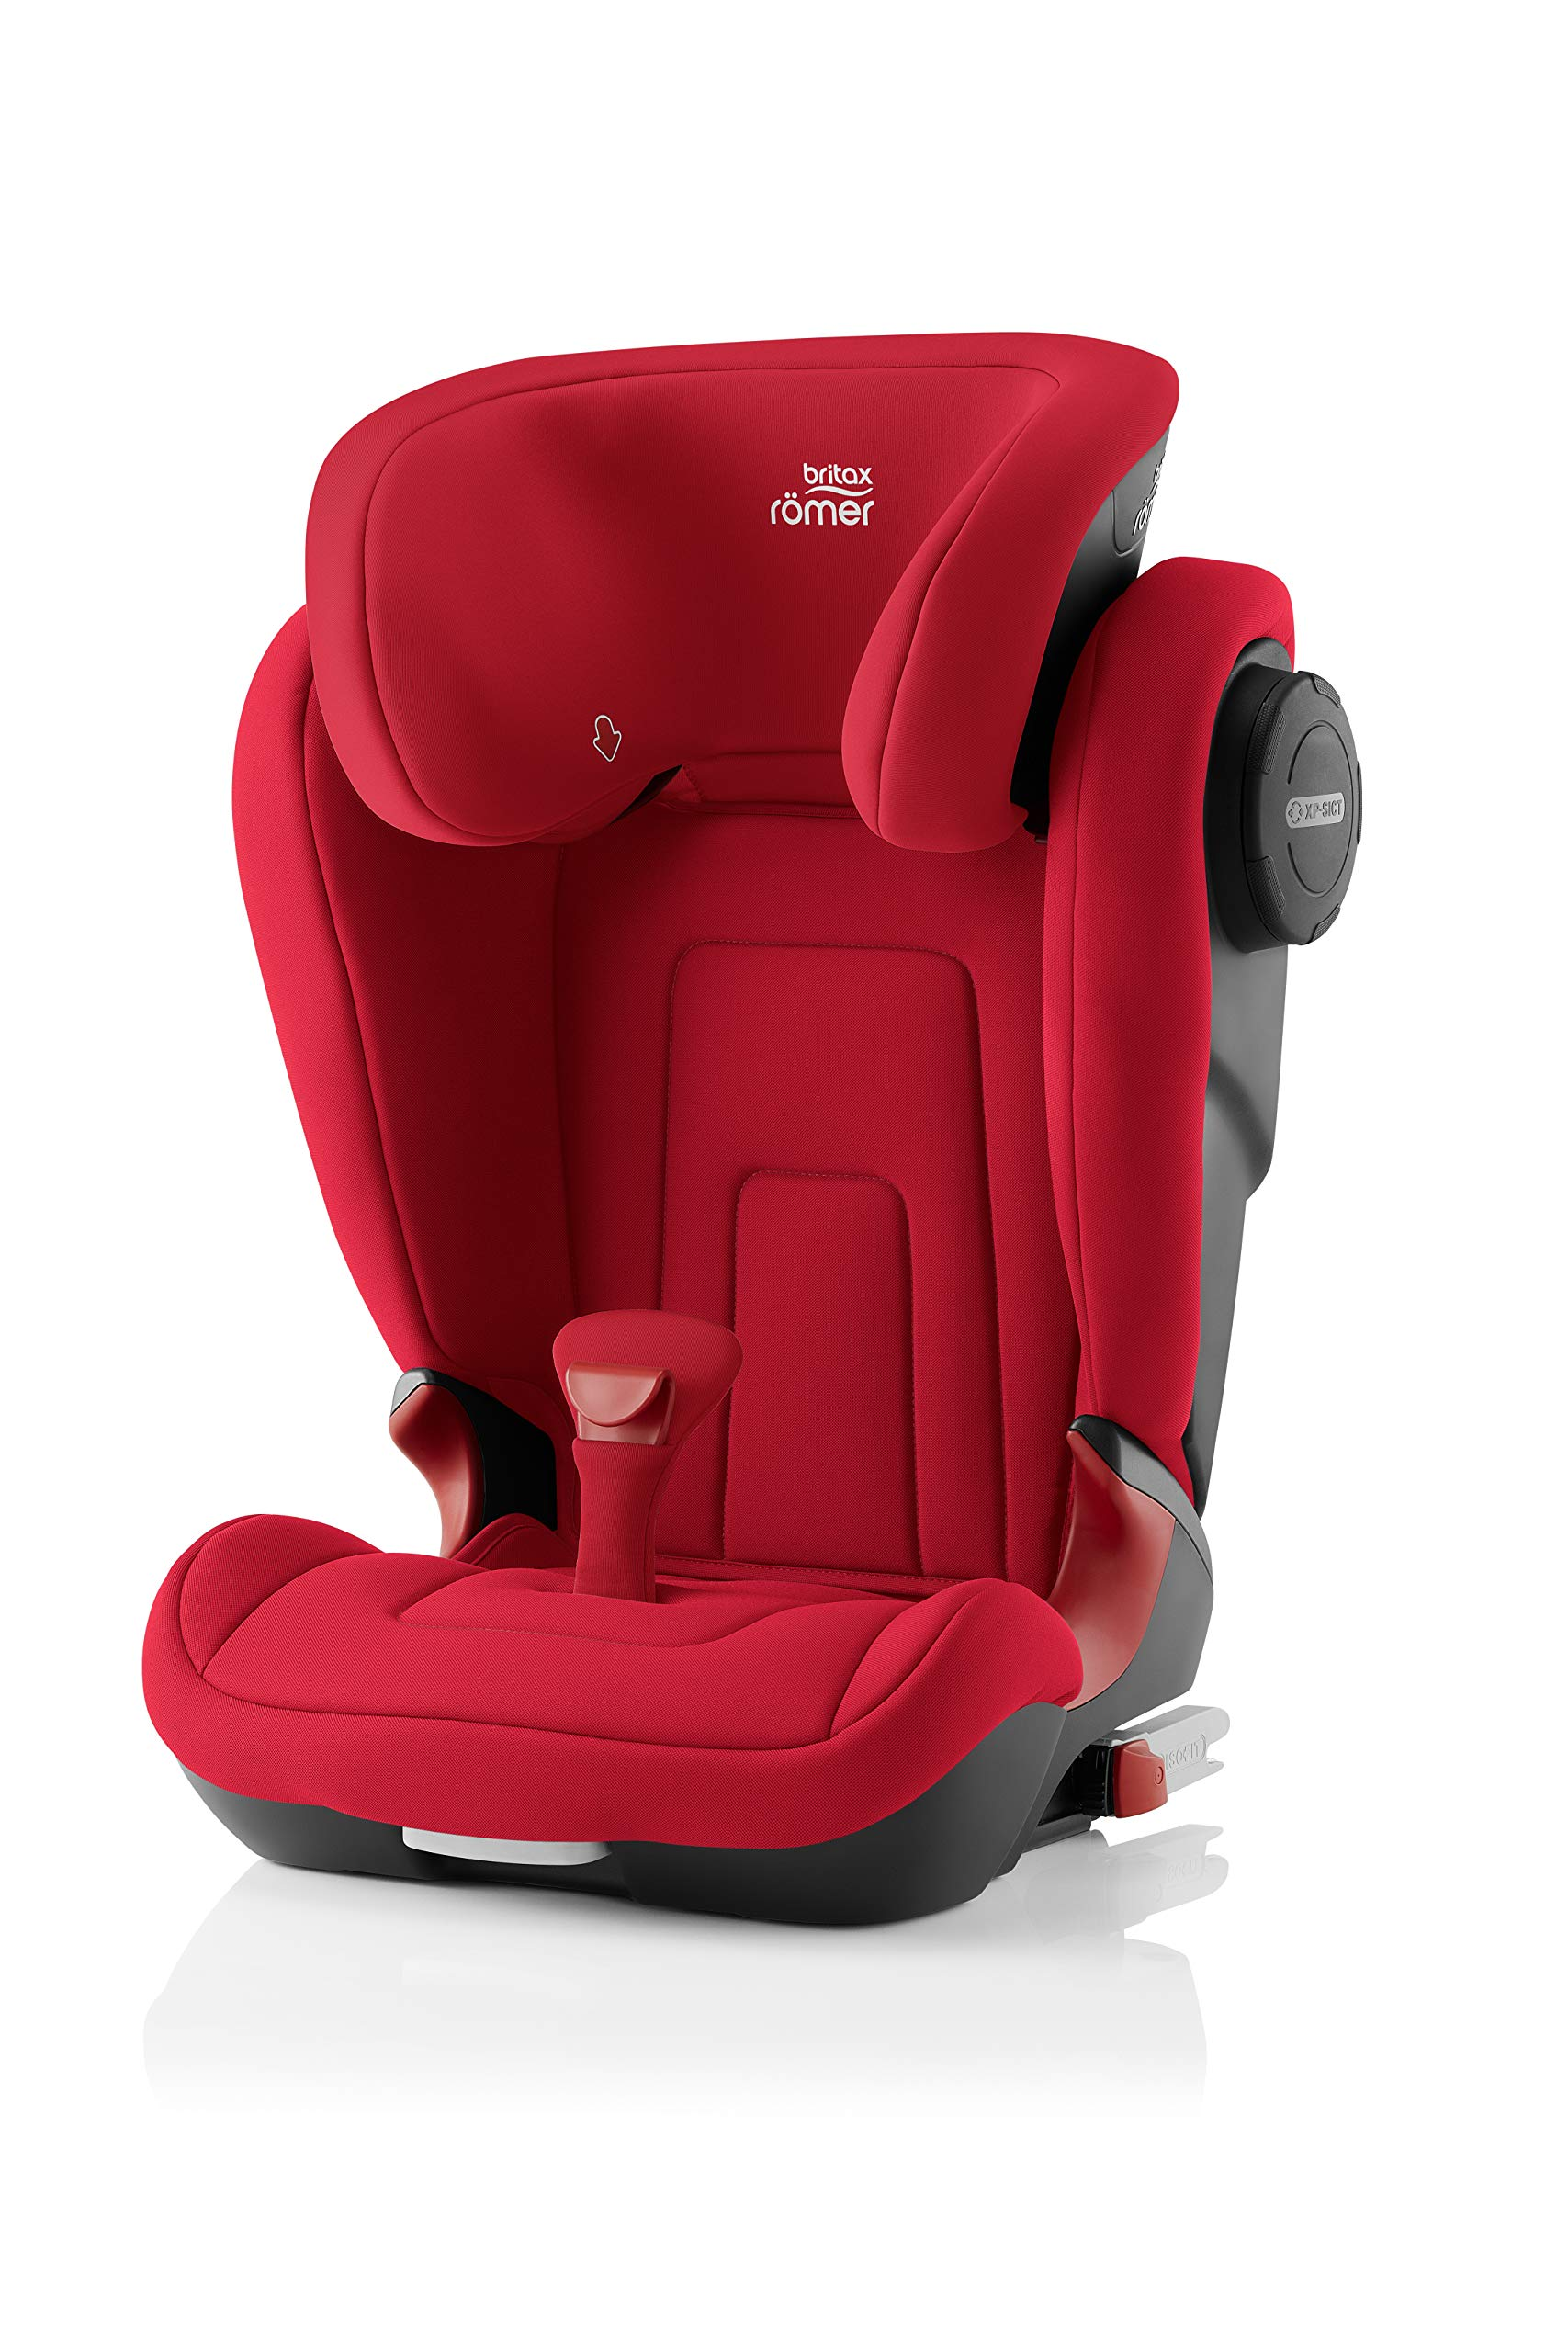 Britax Römer KIDFIX² S Group 2-3 (15-36kg) Car Seat - Fire Red Britax Römer Advanced side impact protection - sict offers superior protection to your child in the event of a side collision. reducing impact forces by minimising the distance between the car and the car seat. Secure guard - helps to protect your child's delicate abdominal area by adding an extra - a 4th - contact point to the 3-point seat belt. High back booster - protects your child in 3 ways: provides head to hip protection; belt guides provide correct positioning of the seat belt and the padded headrest provides safety and comfort. 1